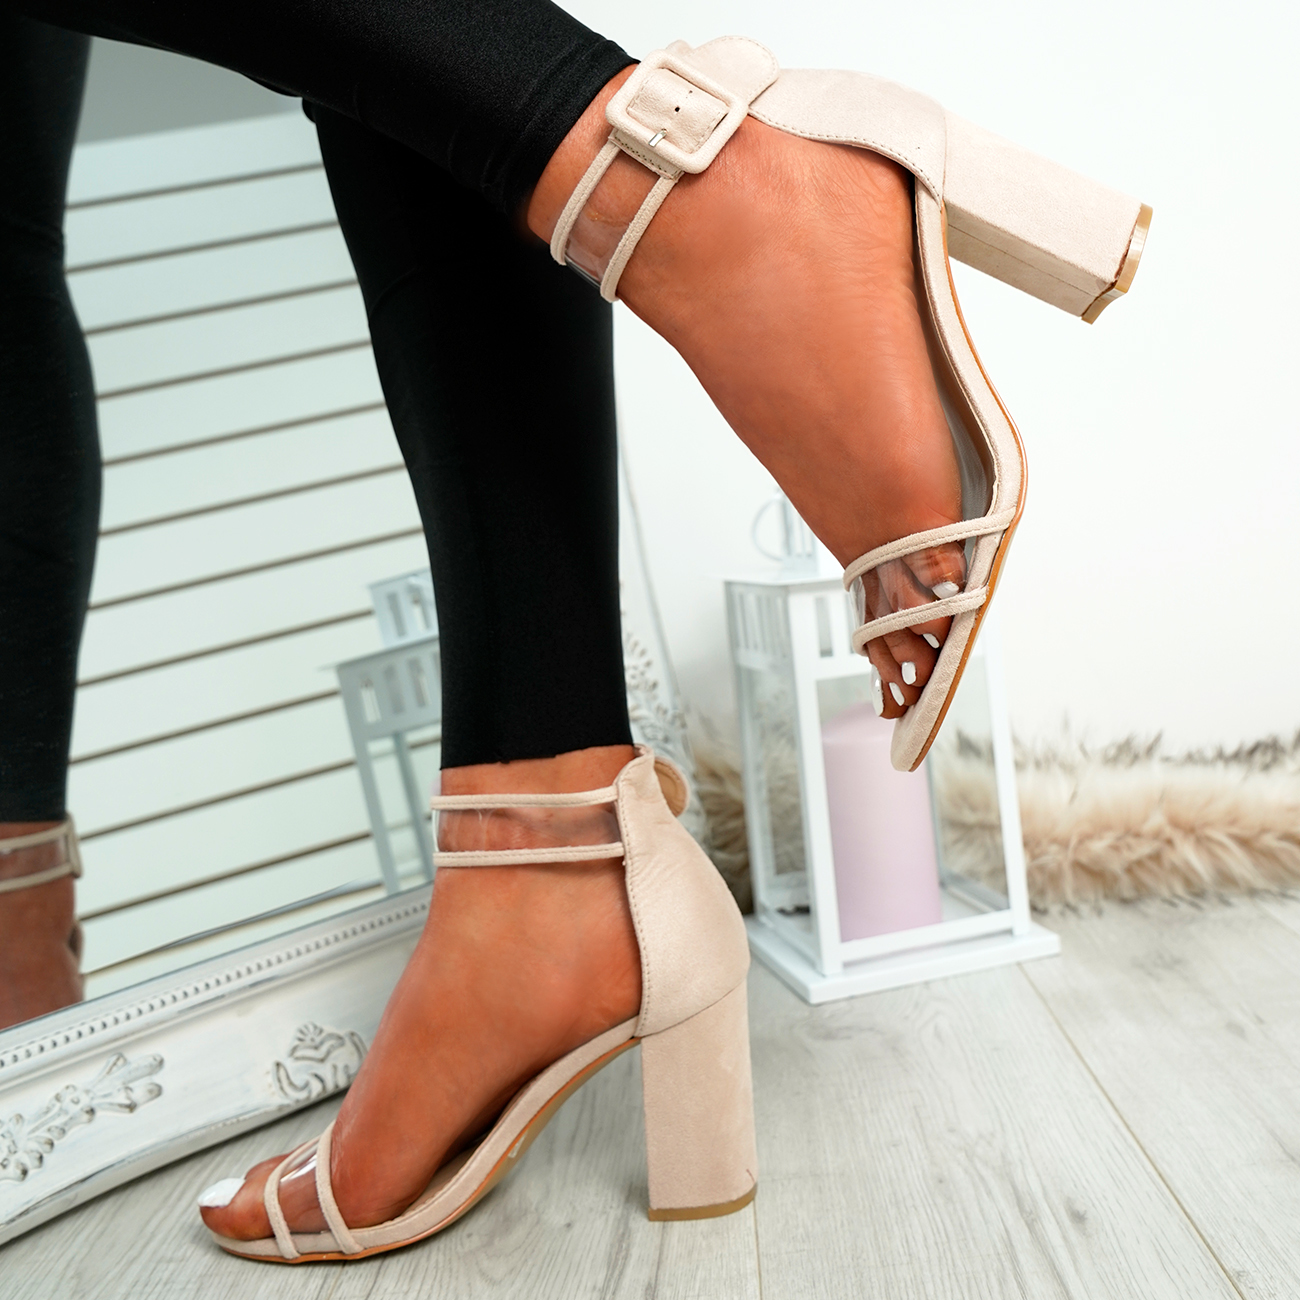 WOMENS-LADIES-ANKLE-STRAP-PEEP-TOE-HIGH-BLOCK-HEEL-SANDALS-FASHION-SHOES thumbnail 9